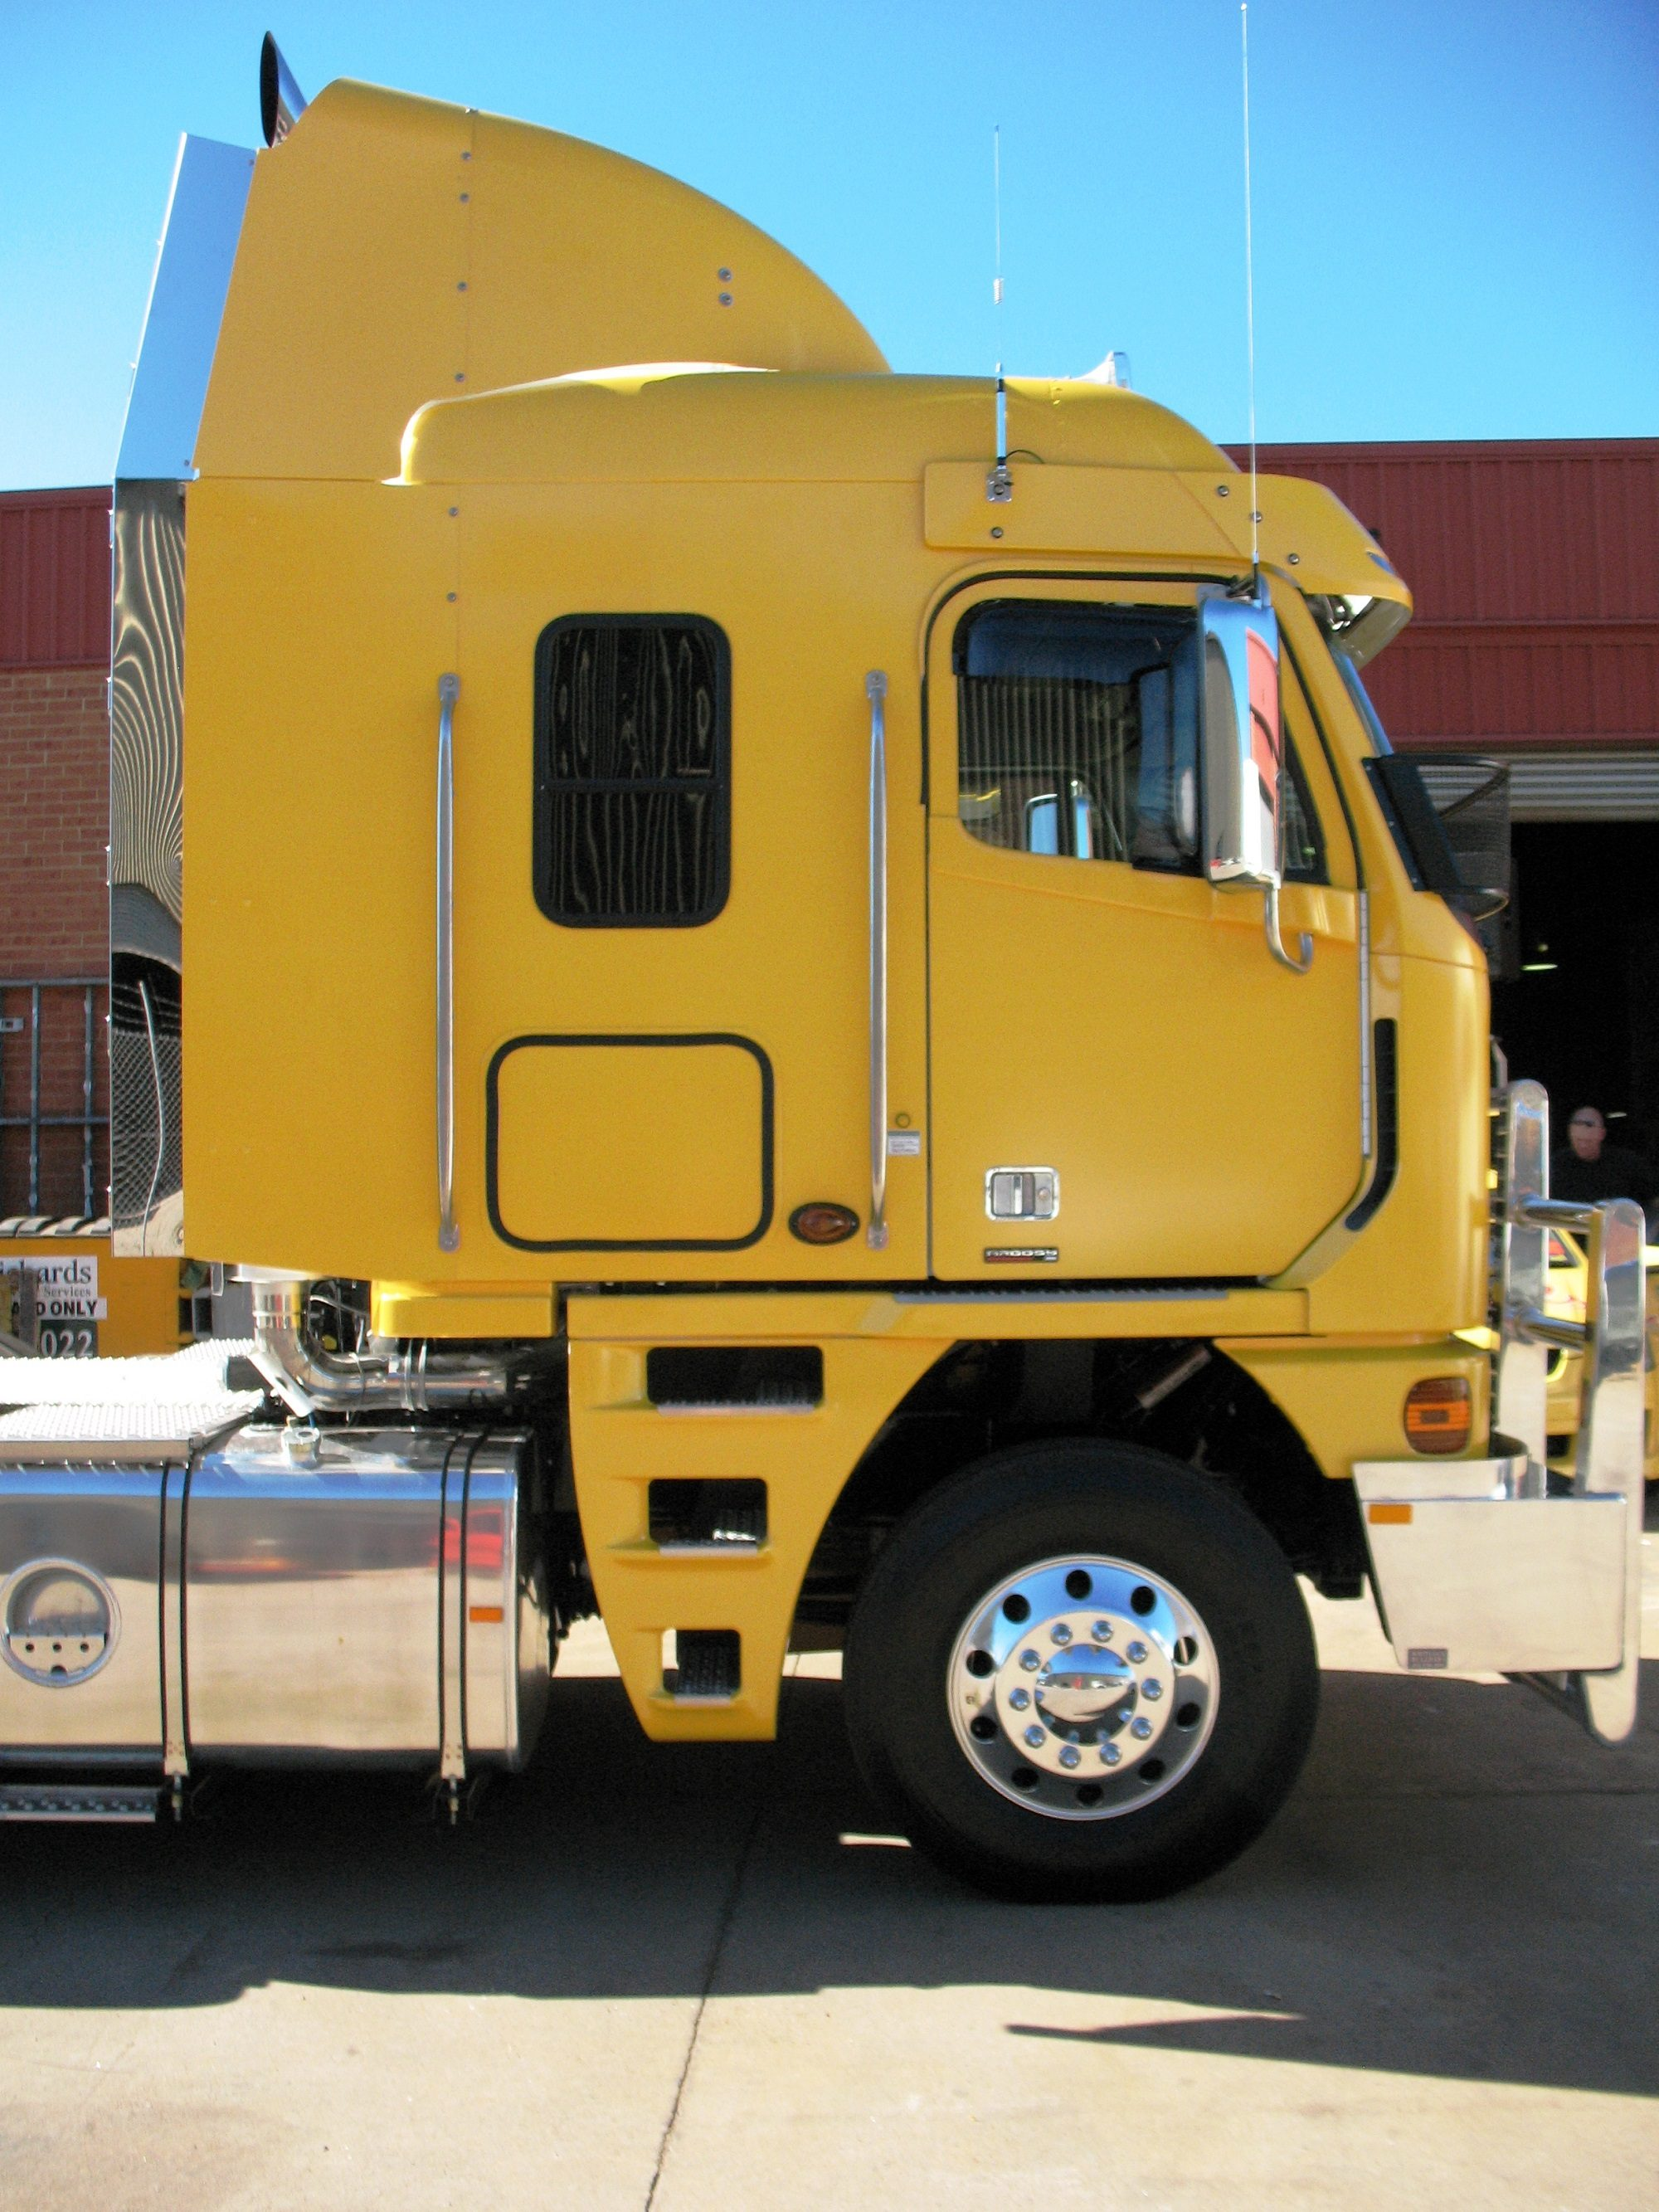 Truck advertising. Vehicle-based events. Custom build. Fleet graphics. Truckside advertising. XXXX Gold Retreat Prime Mover. Freightliner Argosy cabover.